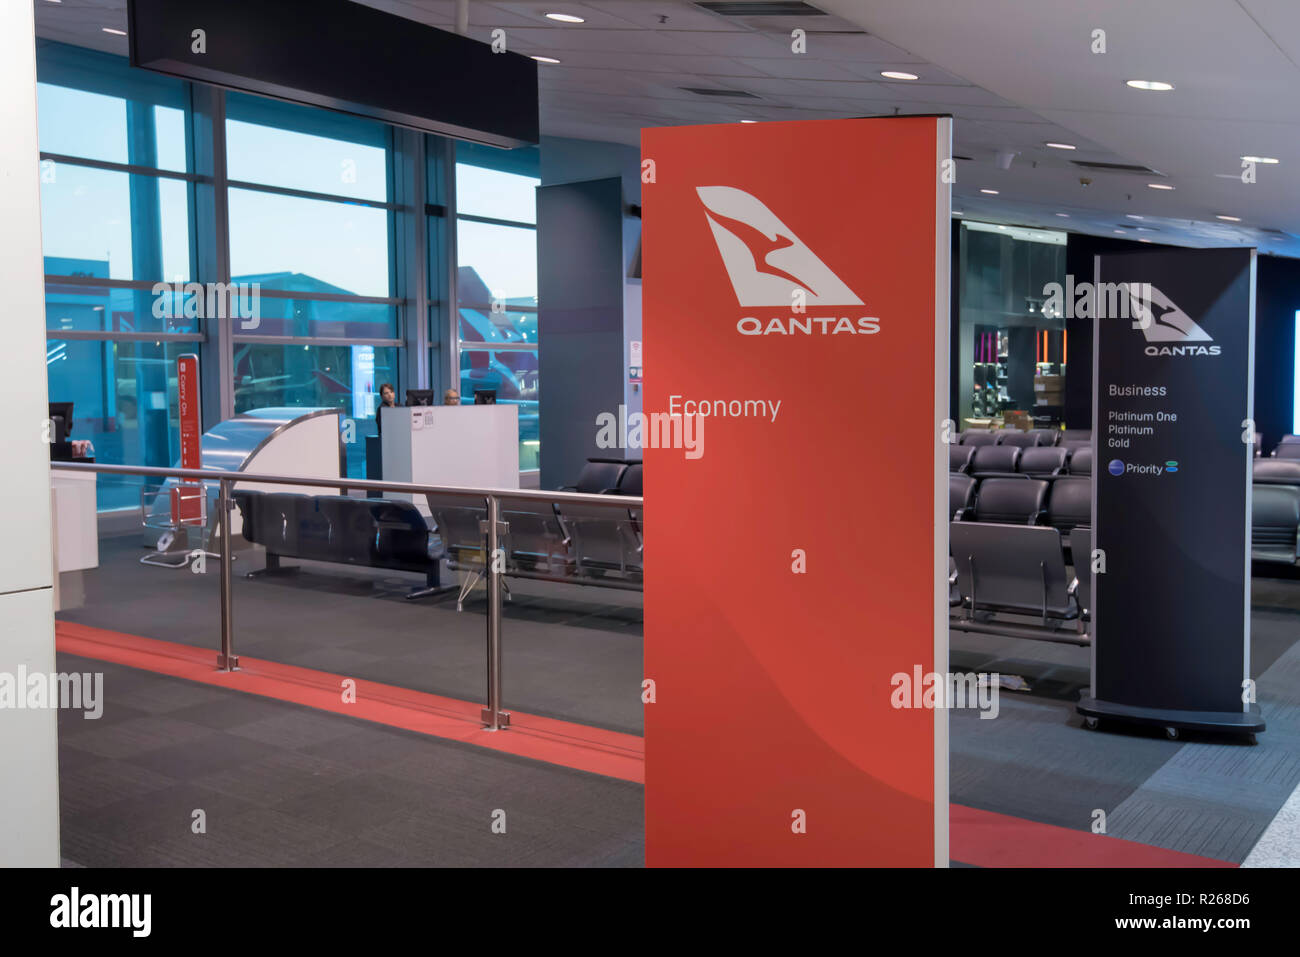 A Qantas departure lounge waiting area for people to congregate before boarding a flight. Economy passengers use a separate line to other classes. - Stock Image